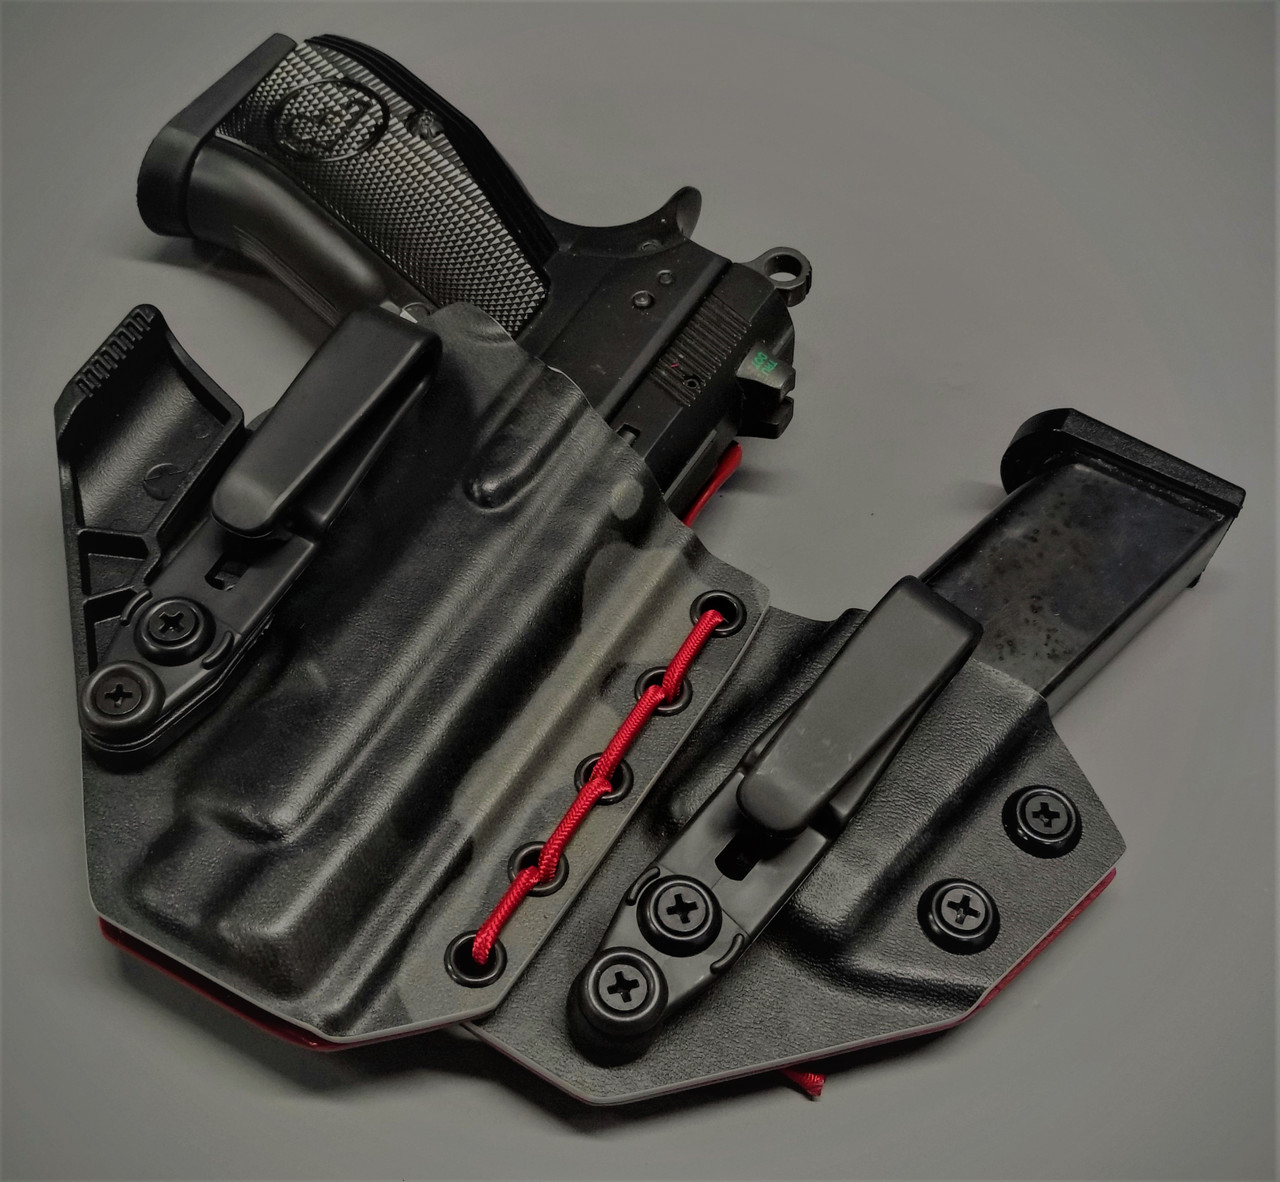 CZ PCR Appendix Carry Rig